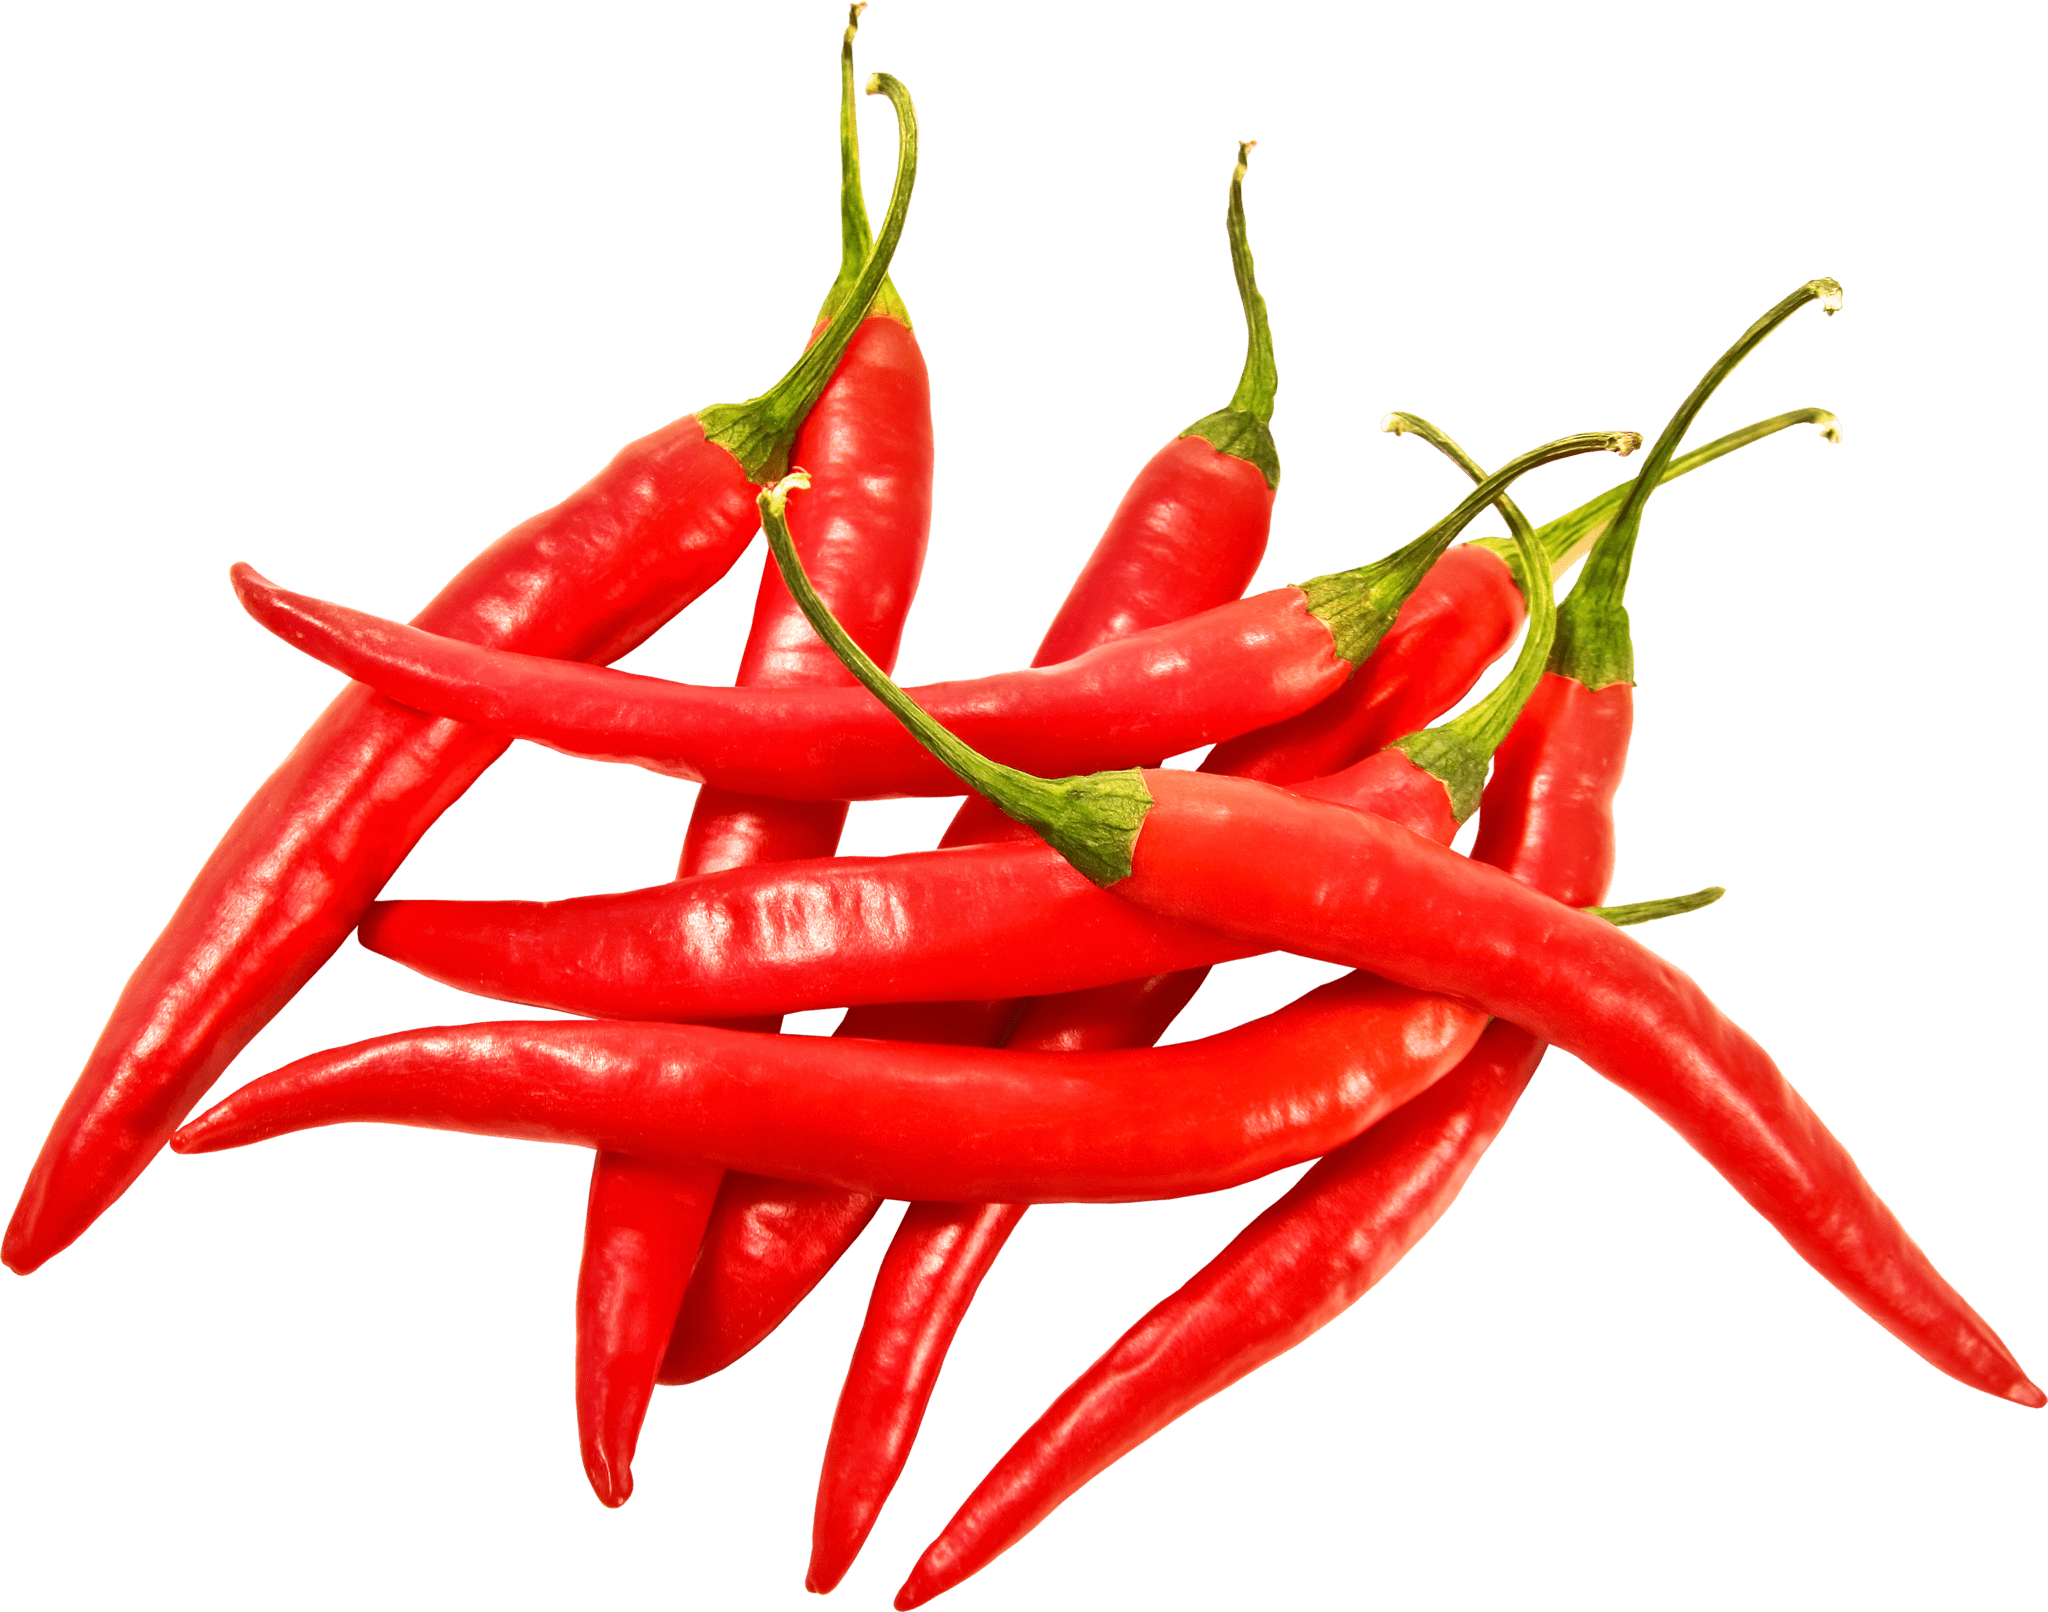 Buy Red Chilli | QualityFood.ae|1 pack = 100 grams (approx.) Thai ...